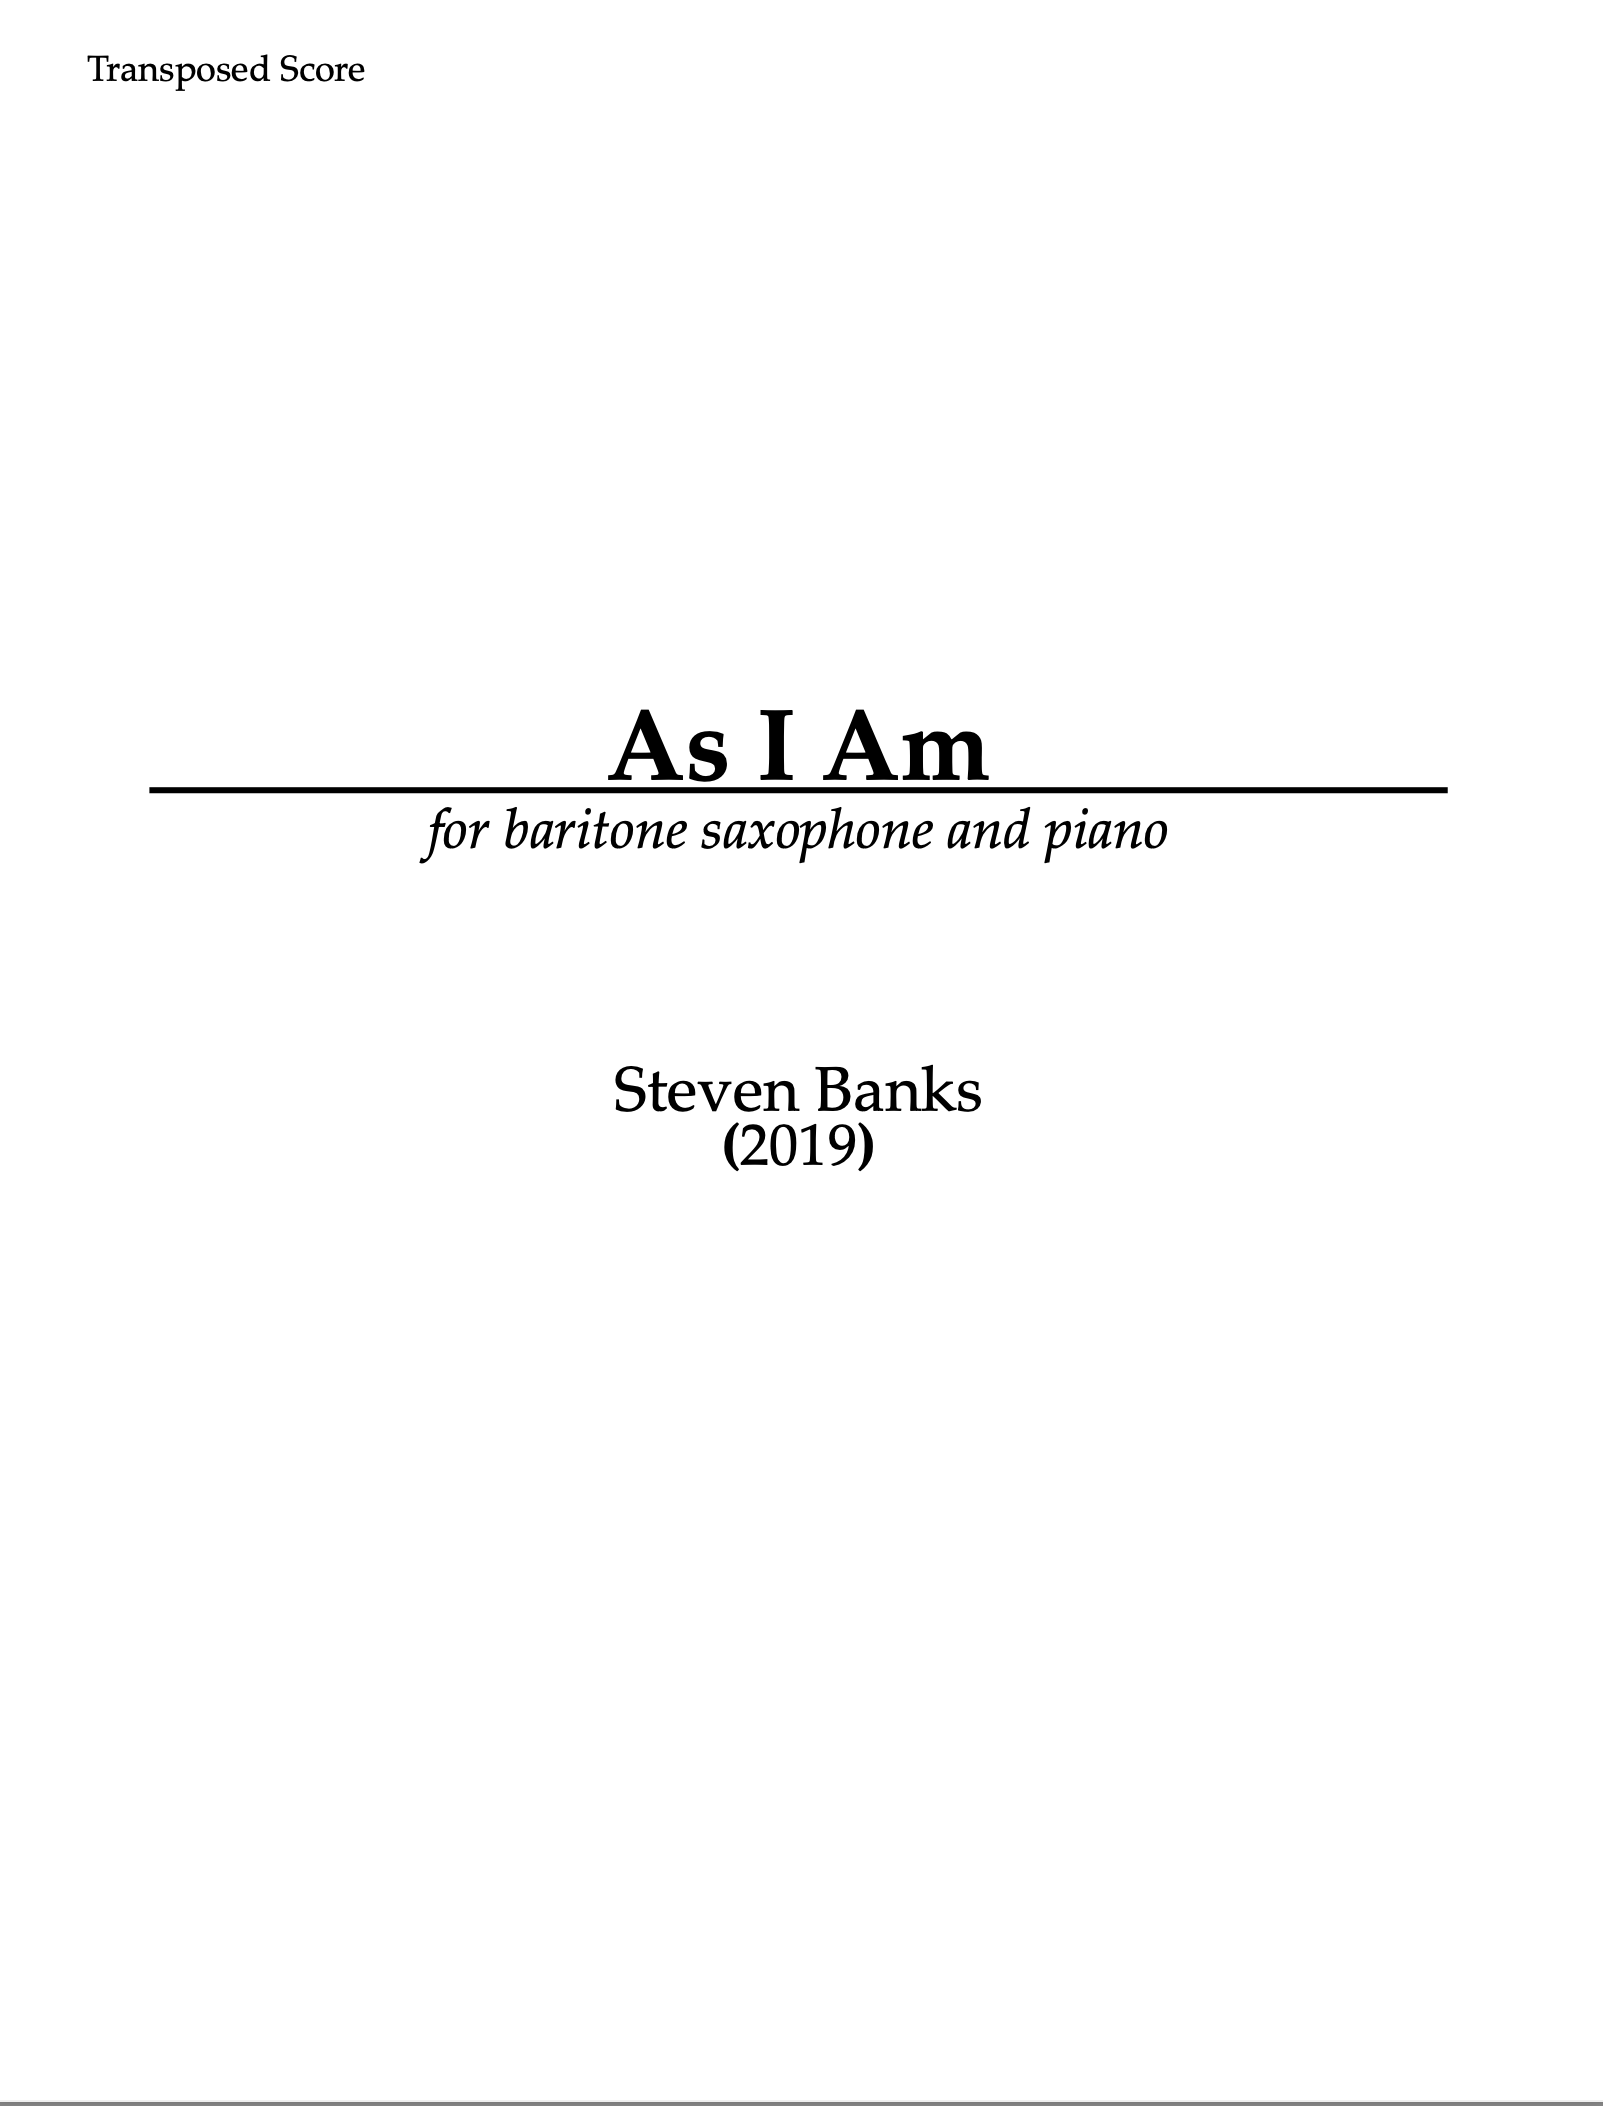 As I Am by Steven Banks